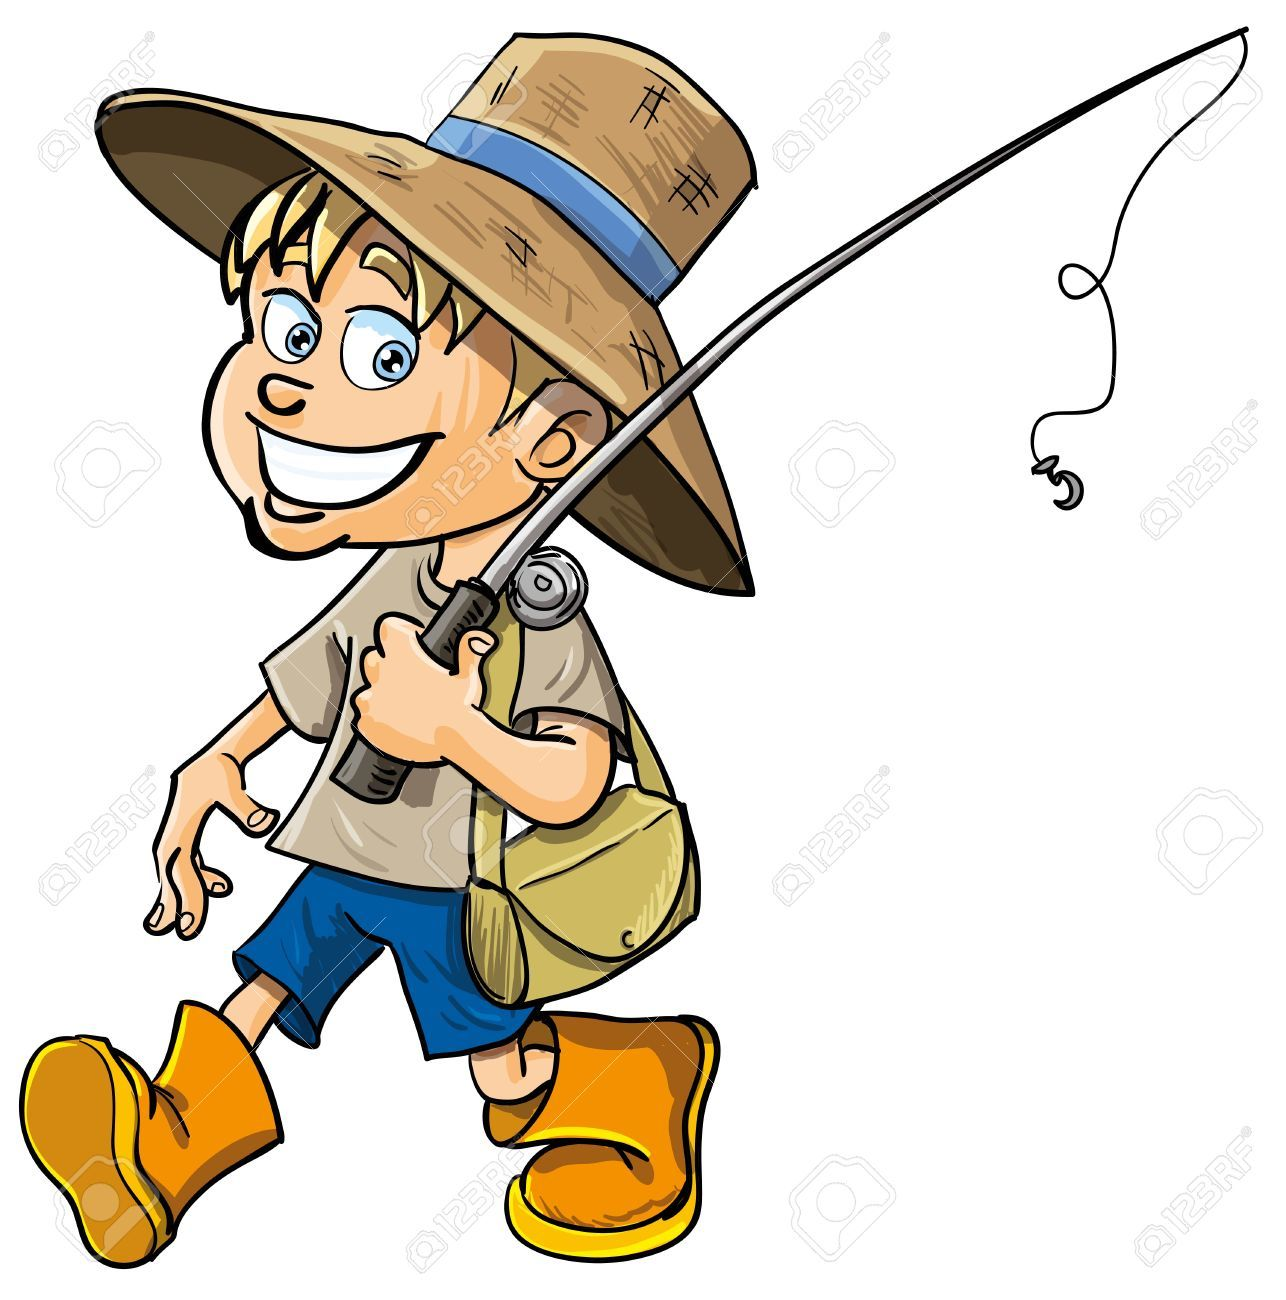 Funny Cartoon Fisherman Cartoon Funny Cartoon Cute Pictures